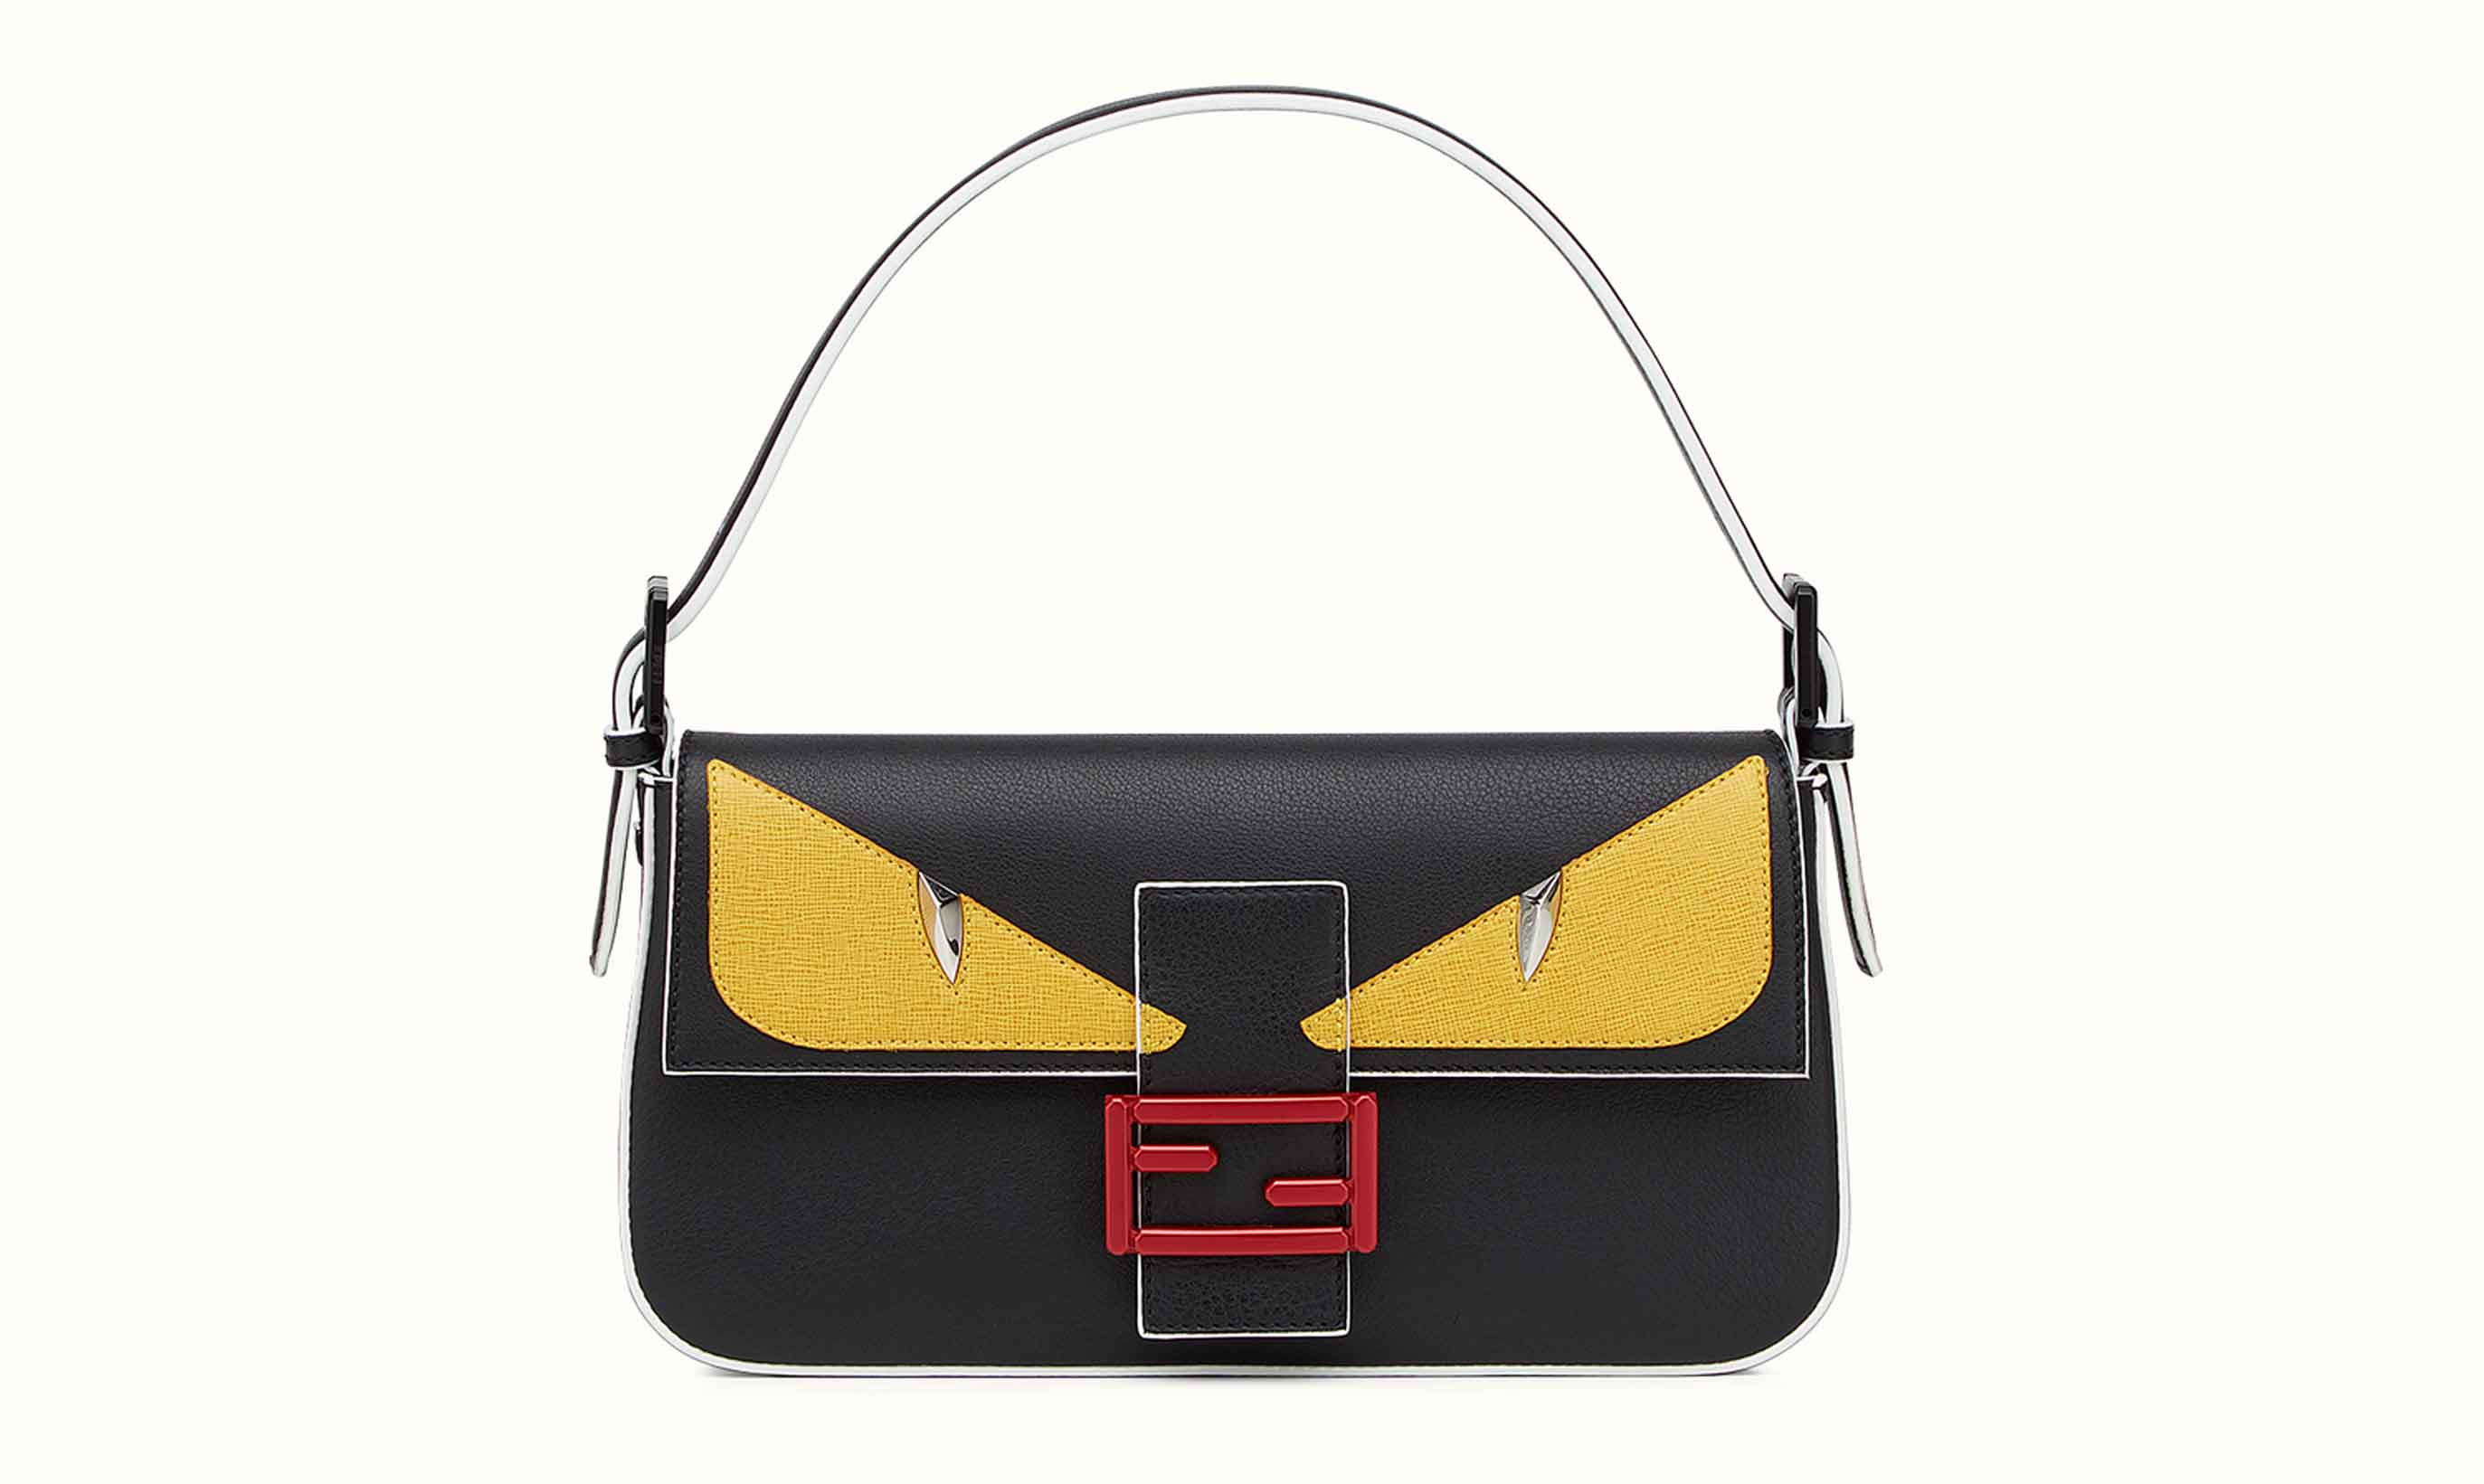 Bag at You - Fashion Blog - Fendi Baguette